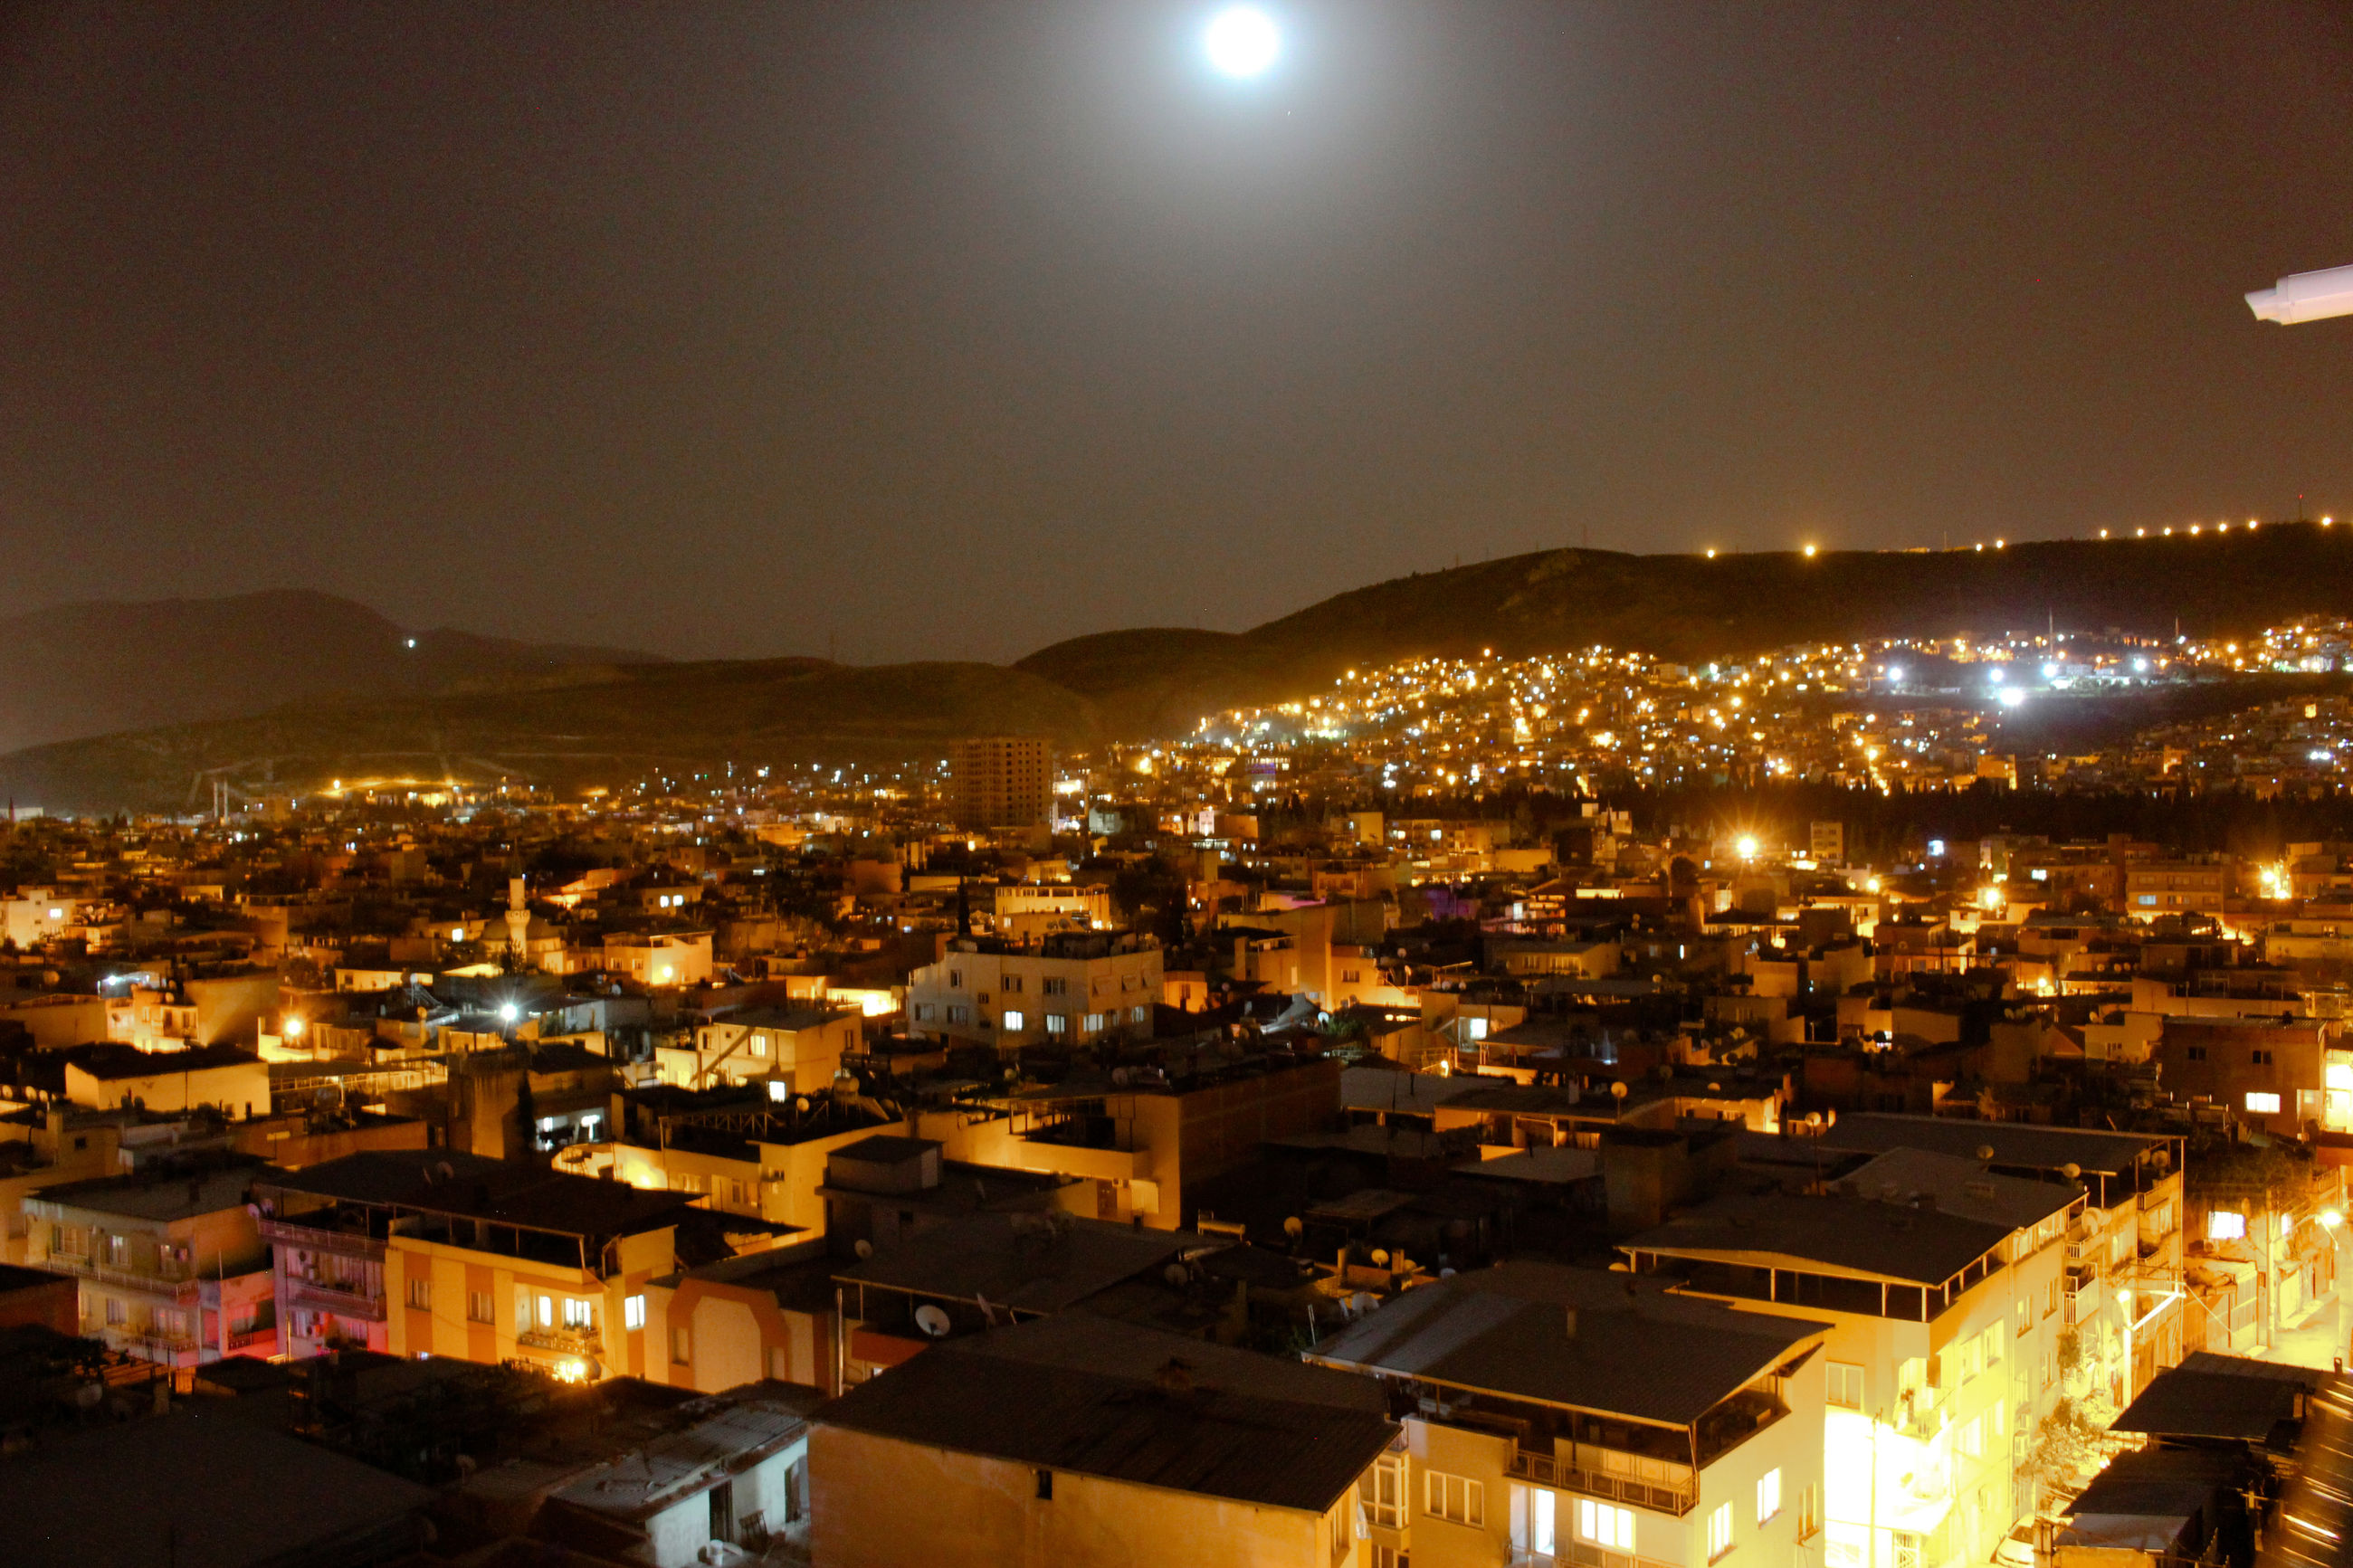 illuminated, architecture, night, building exterior, crowded, built structure, mountain, outdoors, city, moon, cityscape, town, house, sky, residential building, roof